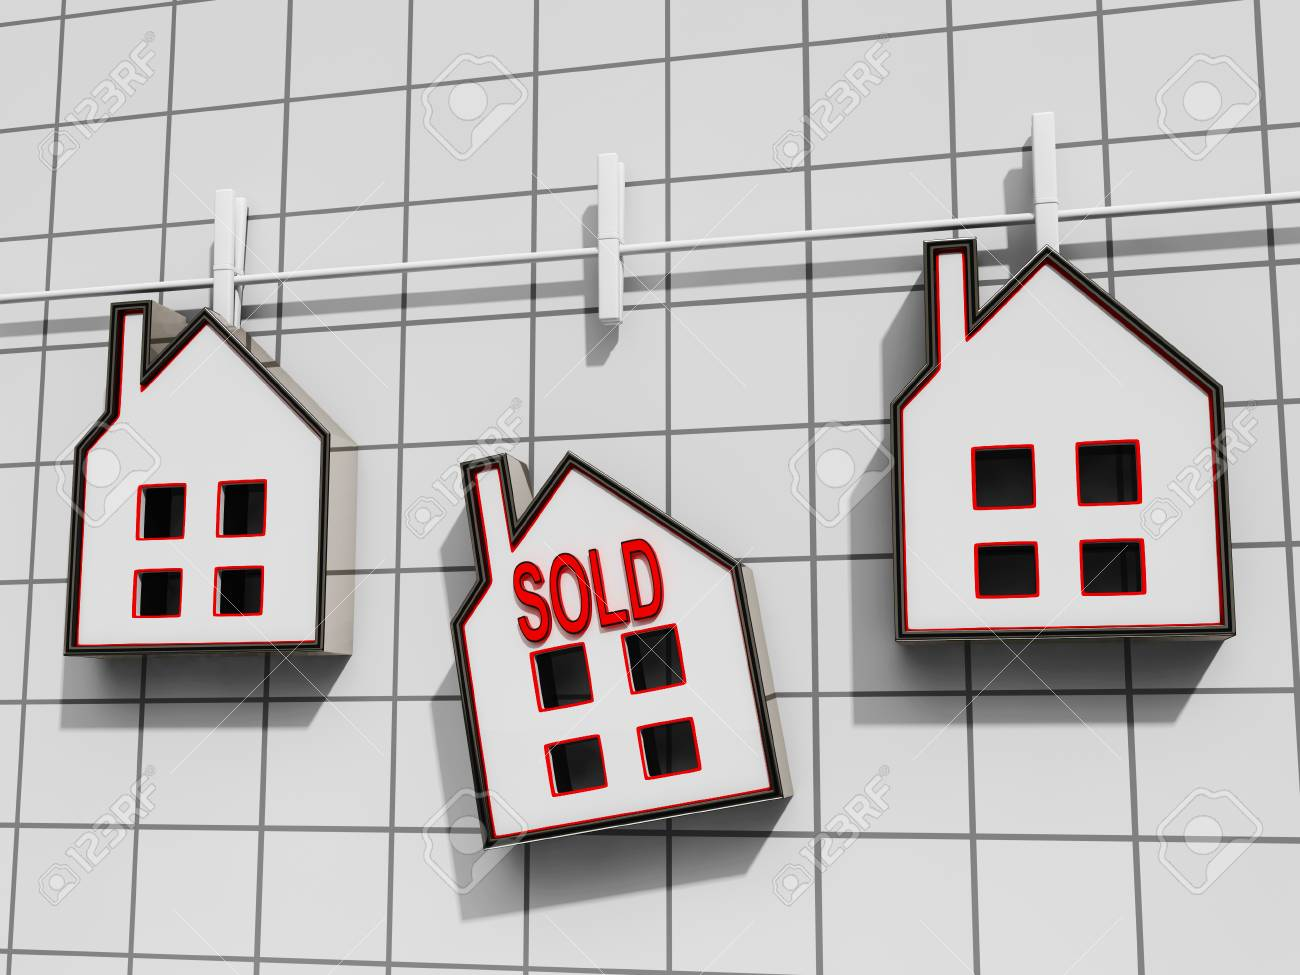 Sold House Meaning Sale Of Real Estate Stock Photo - 22702065